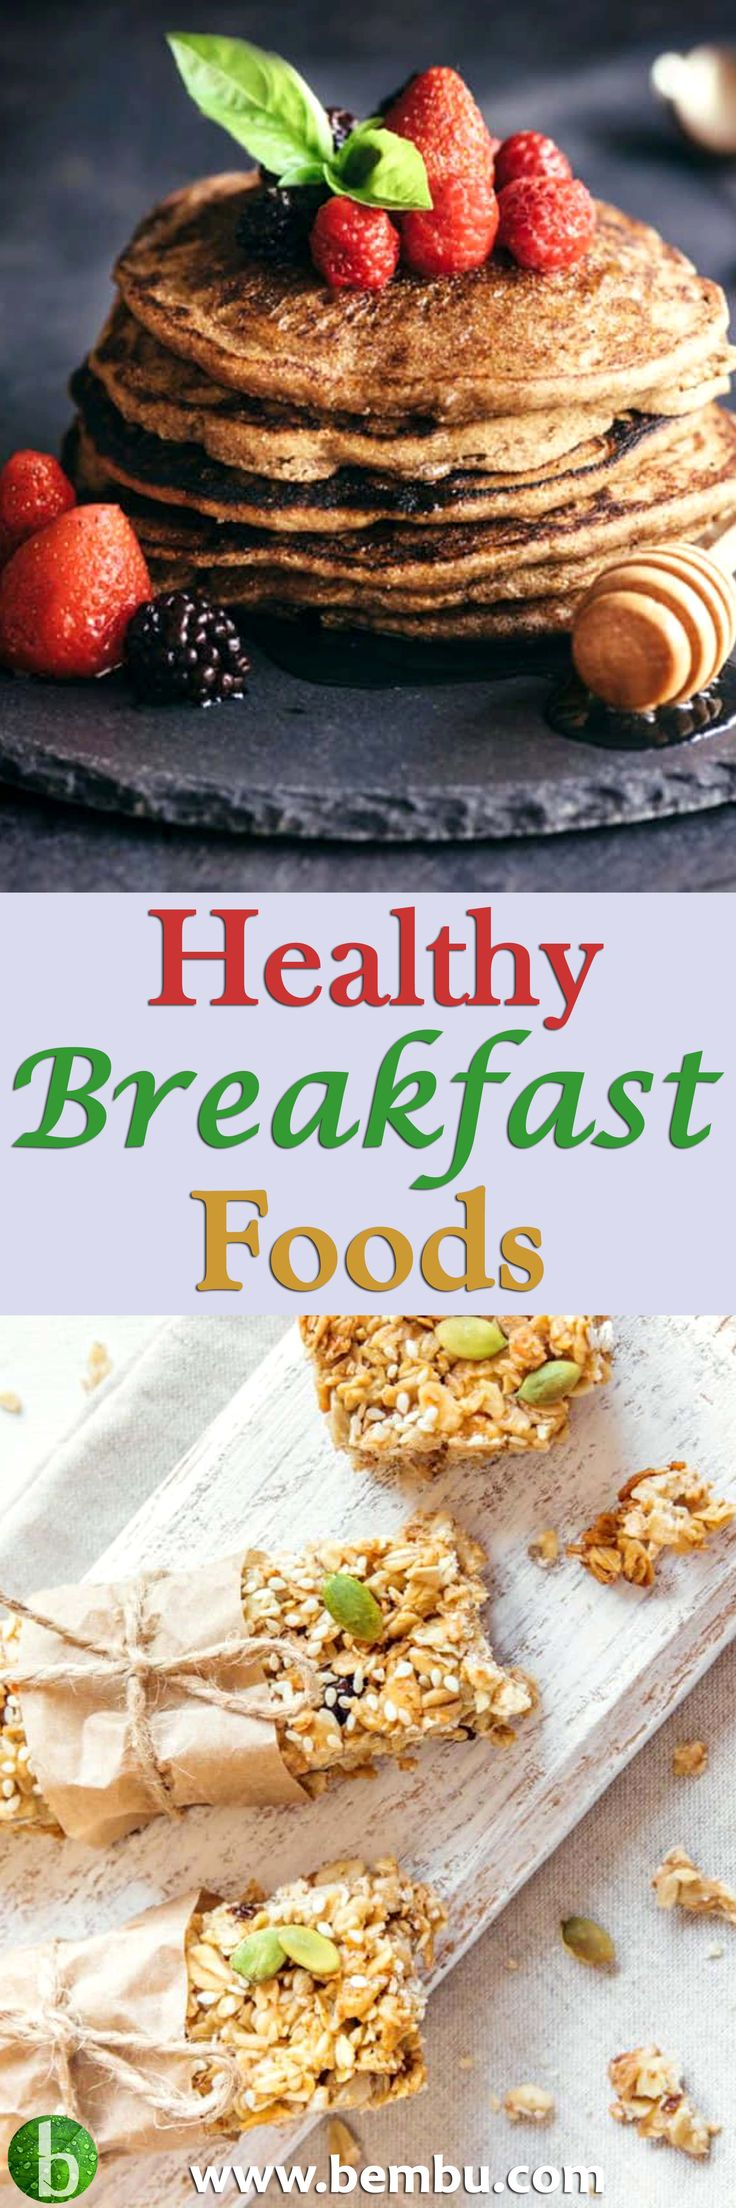 Concerned about your health but unsure about to eat in the morning? Why not try one of these 37 healthy breakfast foods? They're easy to prep. And yummy! Health Tips │ Health Ideas │Healthy Food │Health │Food │Desserts │Low Carb │Favourite Recipes │Gluten Free │Breakfast │Vegan Recipes #Health #Ideas #Tips #Vitamin #Healthyfood #Food #Desserts #Lowcarb #Recipes #Glutenfree #Breakfast #Vegan